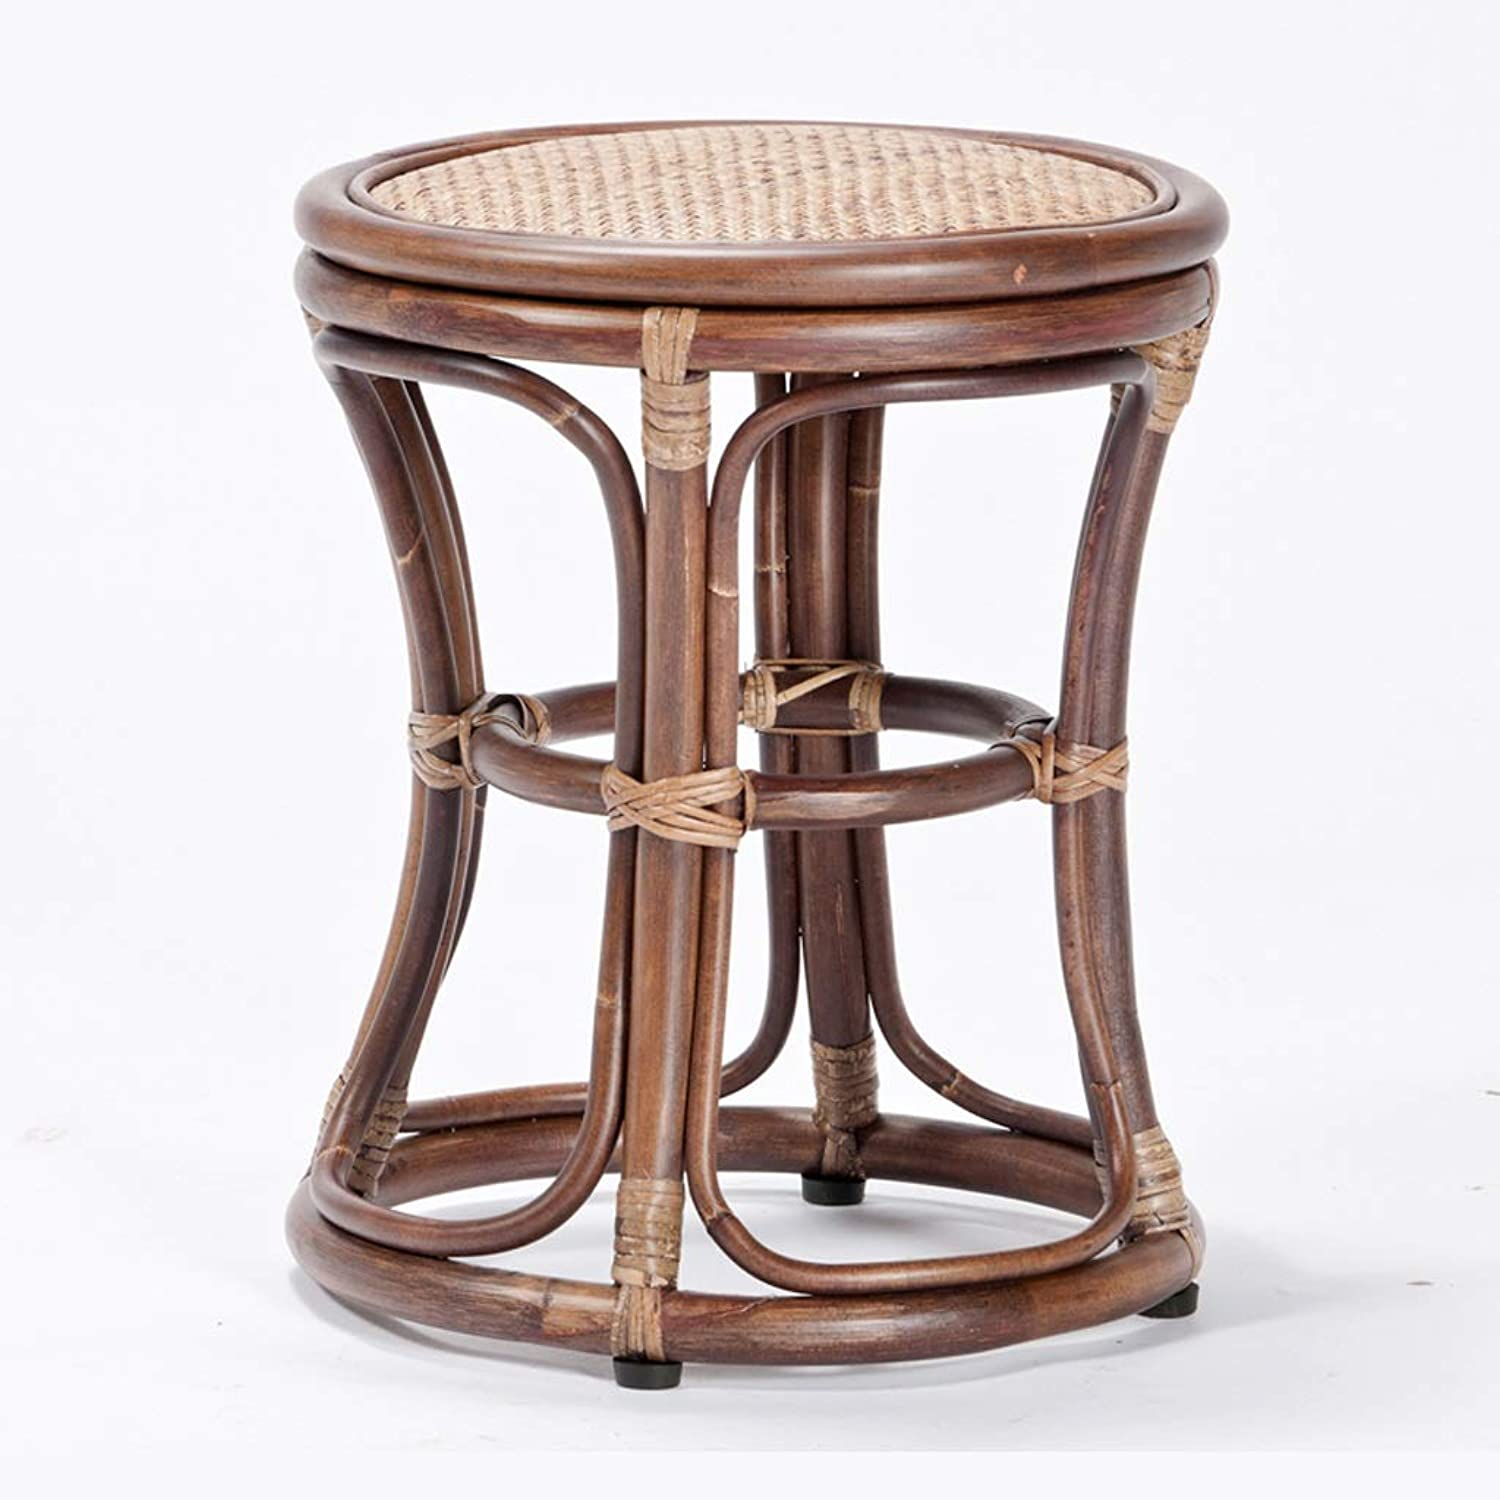 SYFO Home Modern Simple Rattan Stools Change shoes Stool Creative Rattan Change shoes Bench Two Sizes Stool (Size   H 42cm)